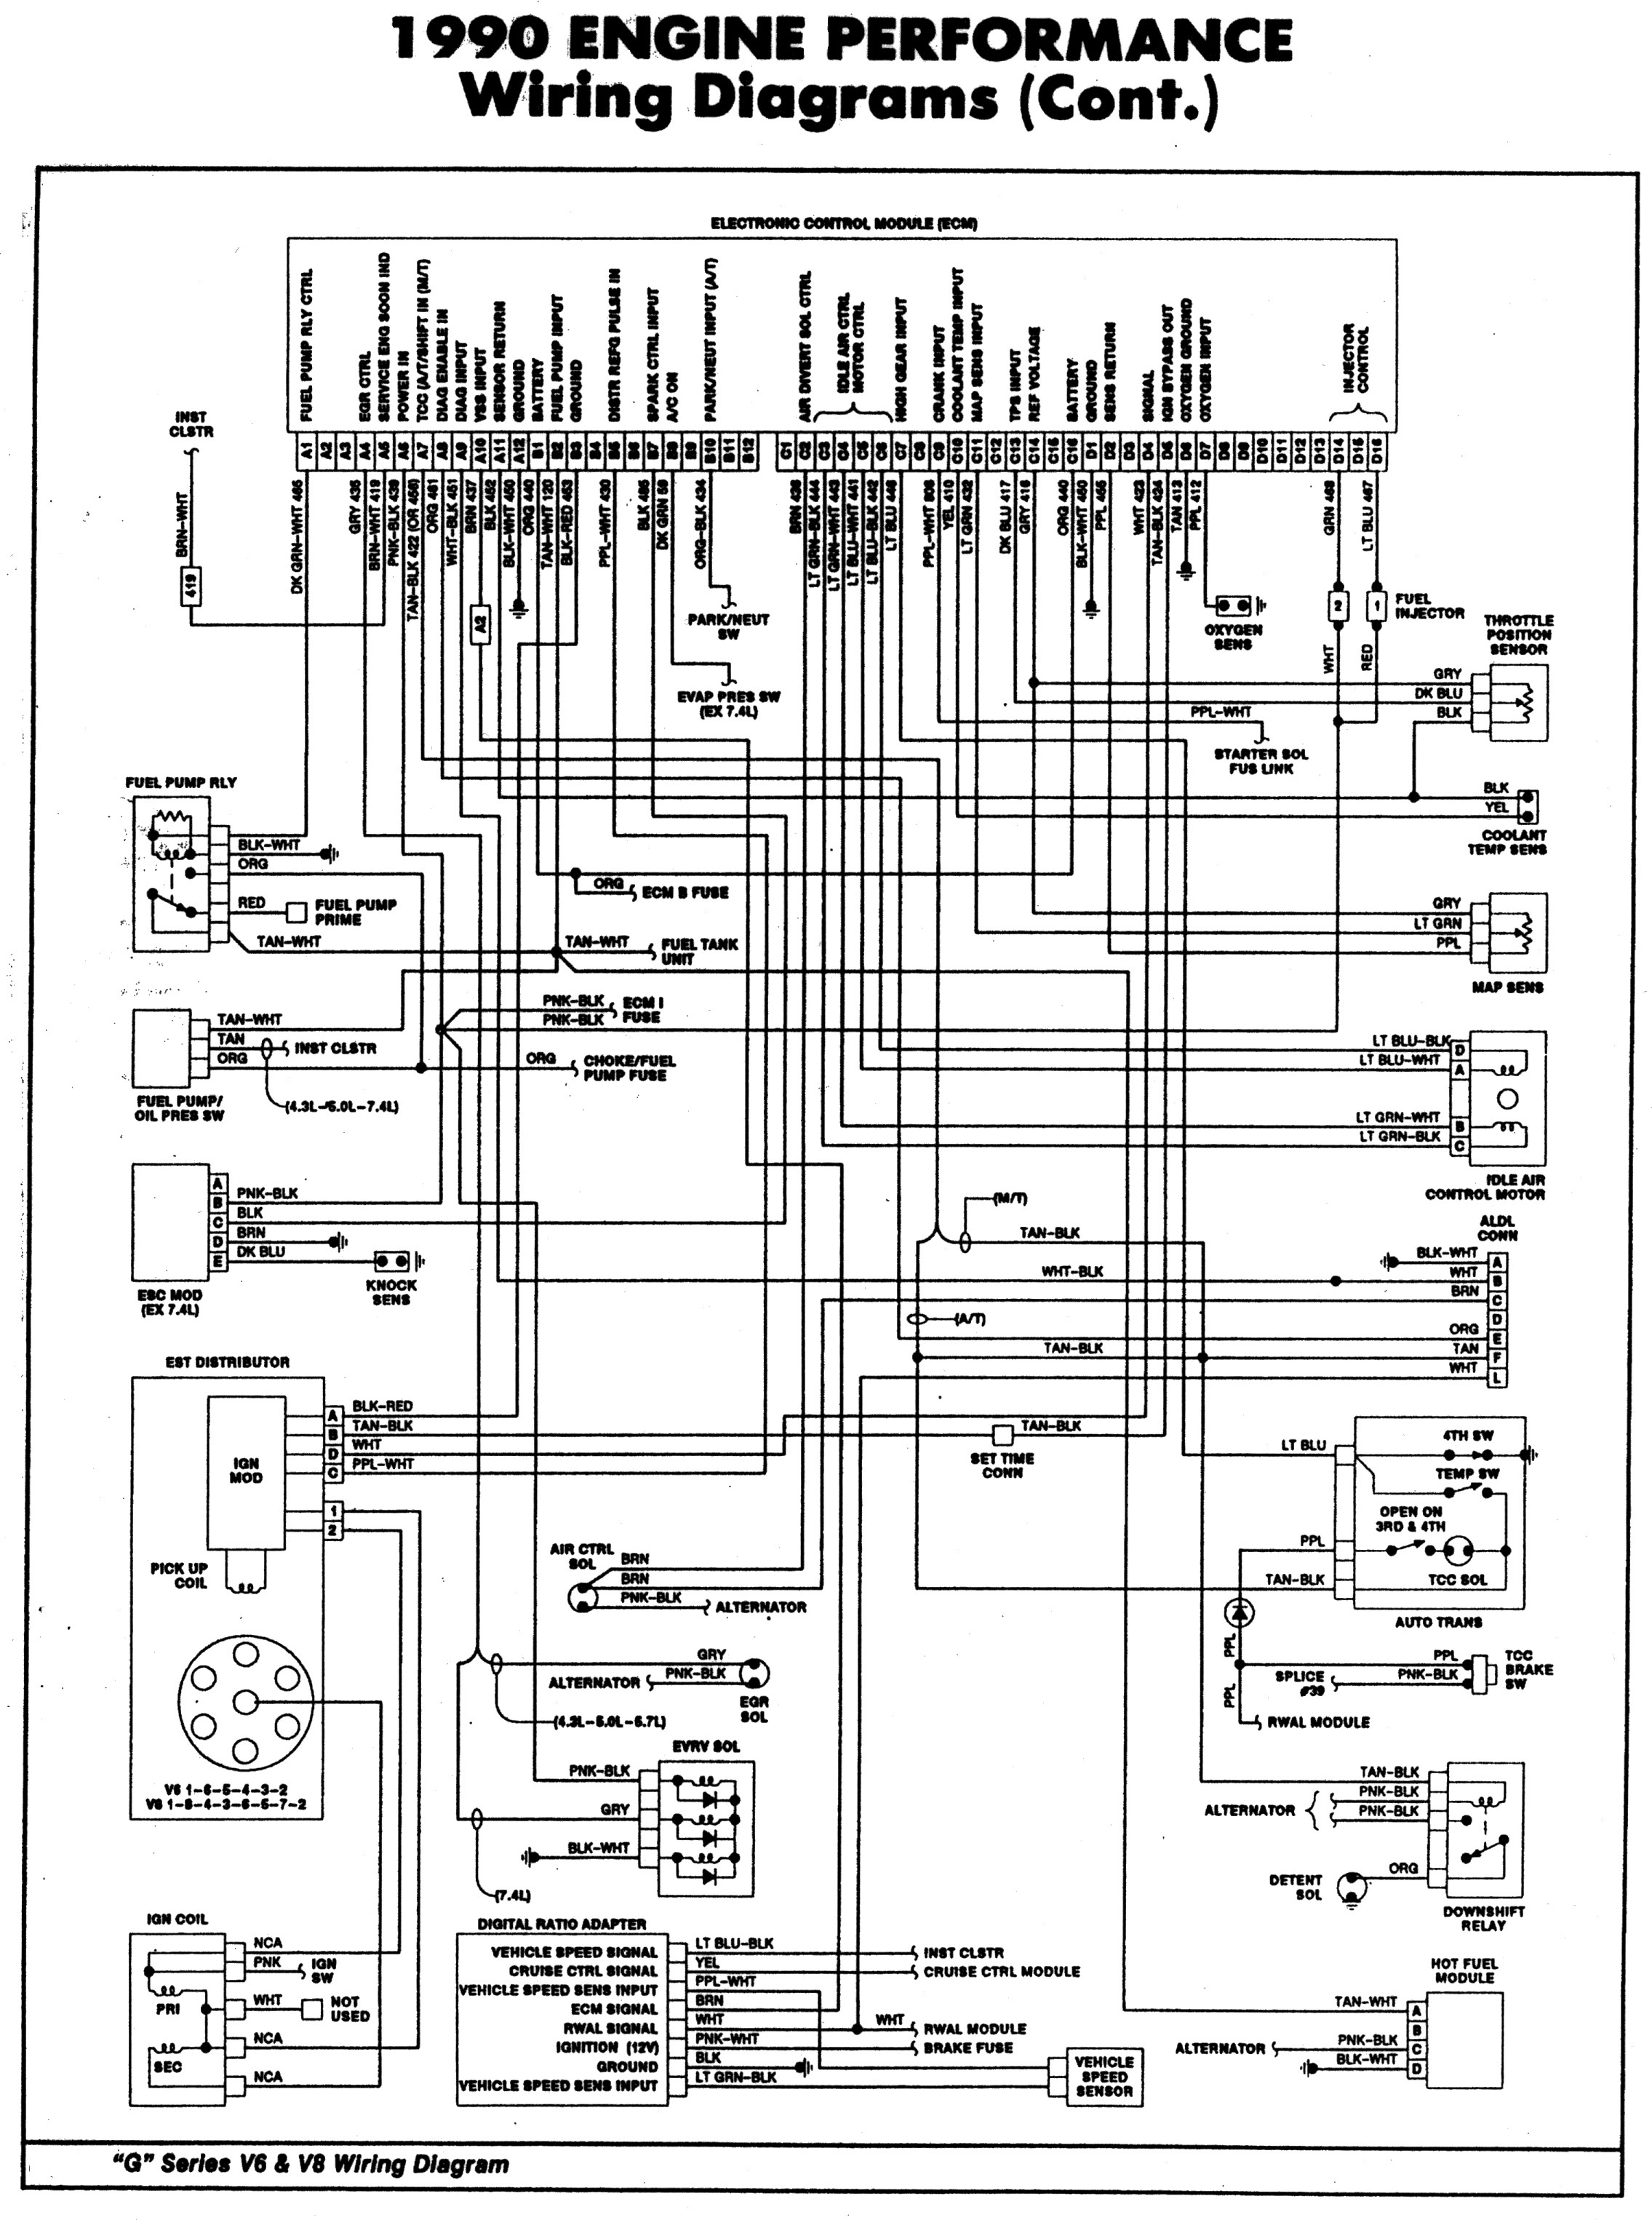 small resolution of 91 lumina wiring diagram wiring diagram yer 91 chevy suburban wiring diagram 91 lumina wiring diagram